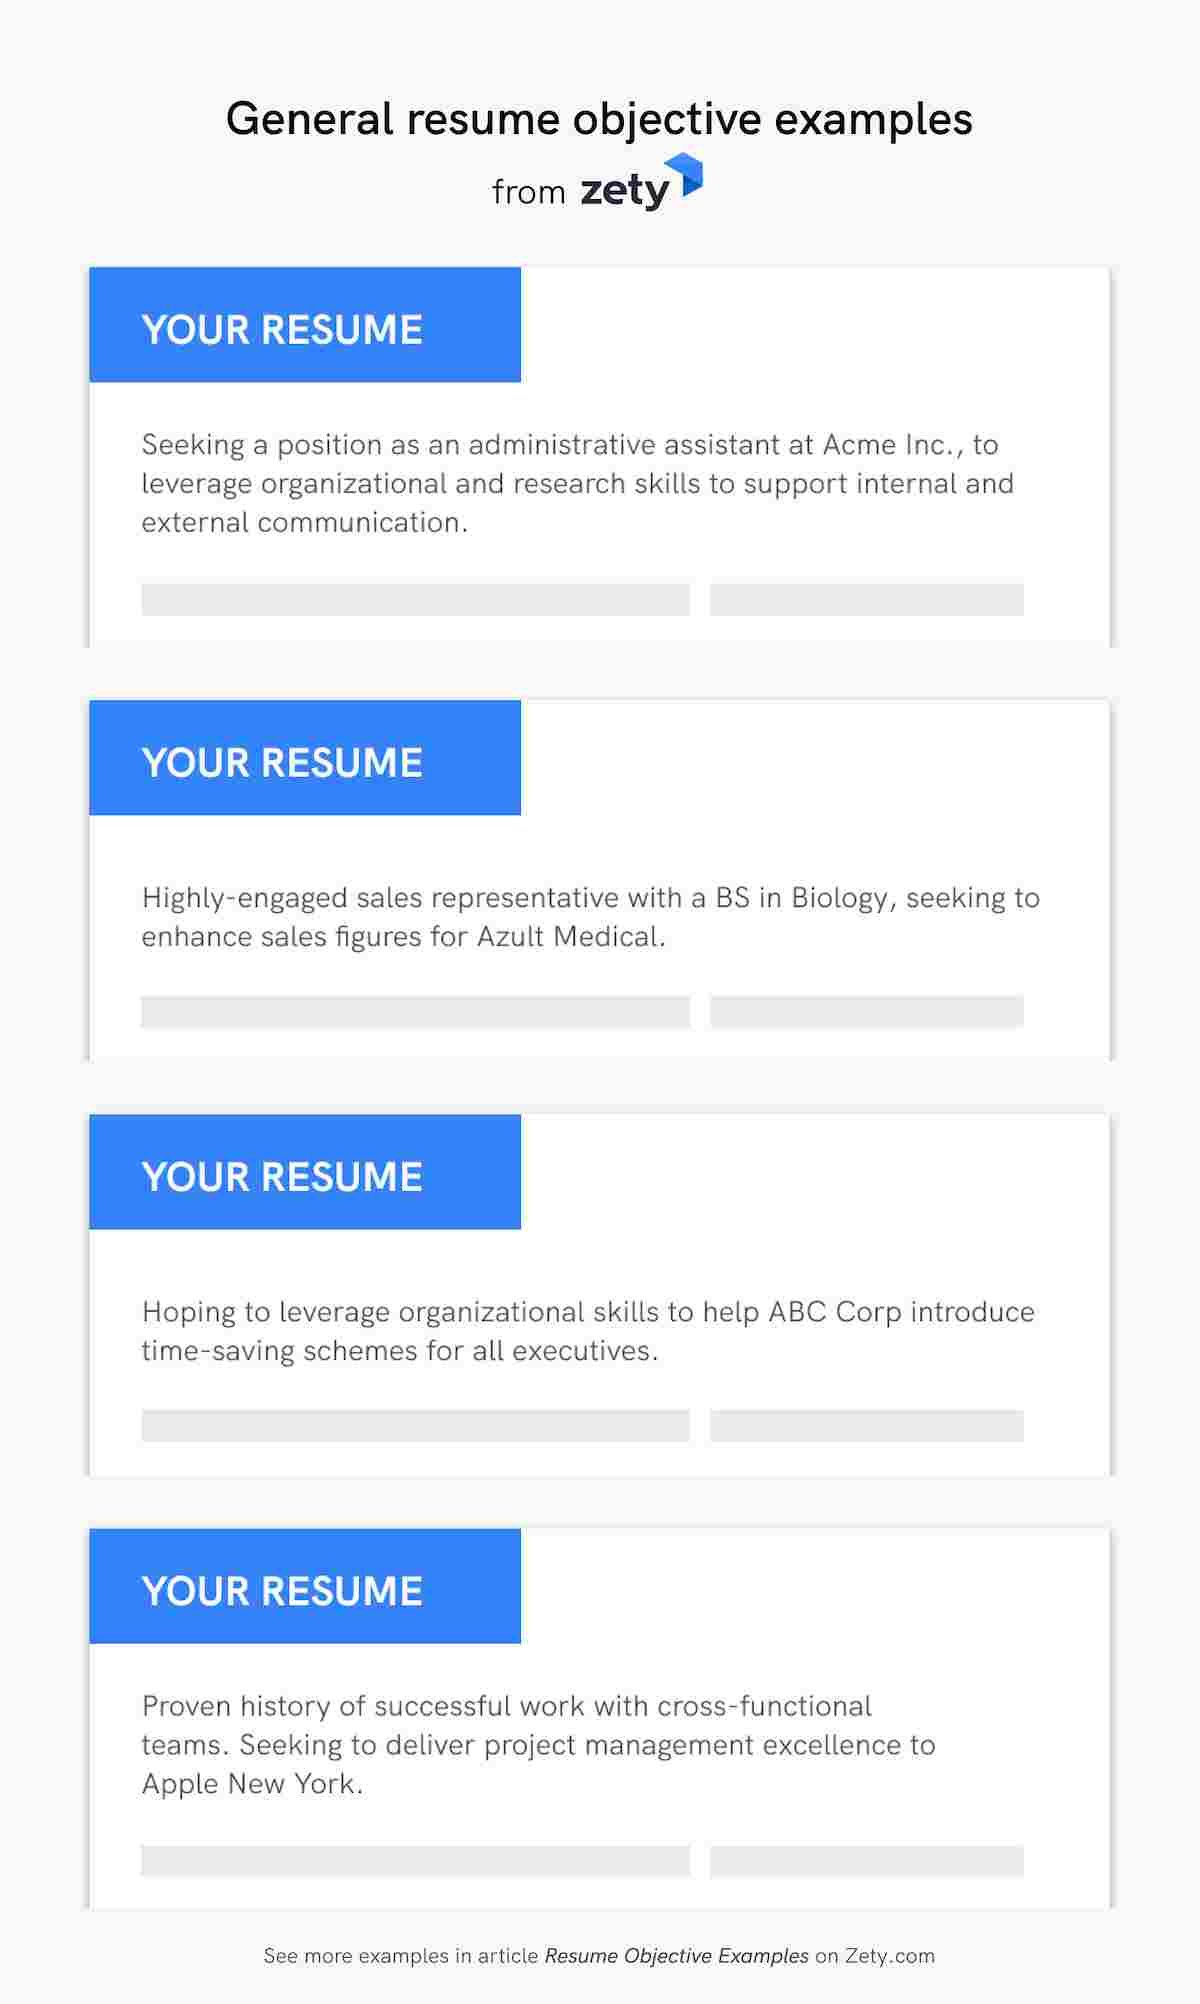 resume objective examples career objectives for all jobs general samples business process Resume General Resume Objective Samples